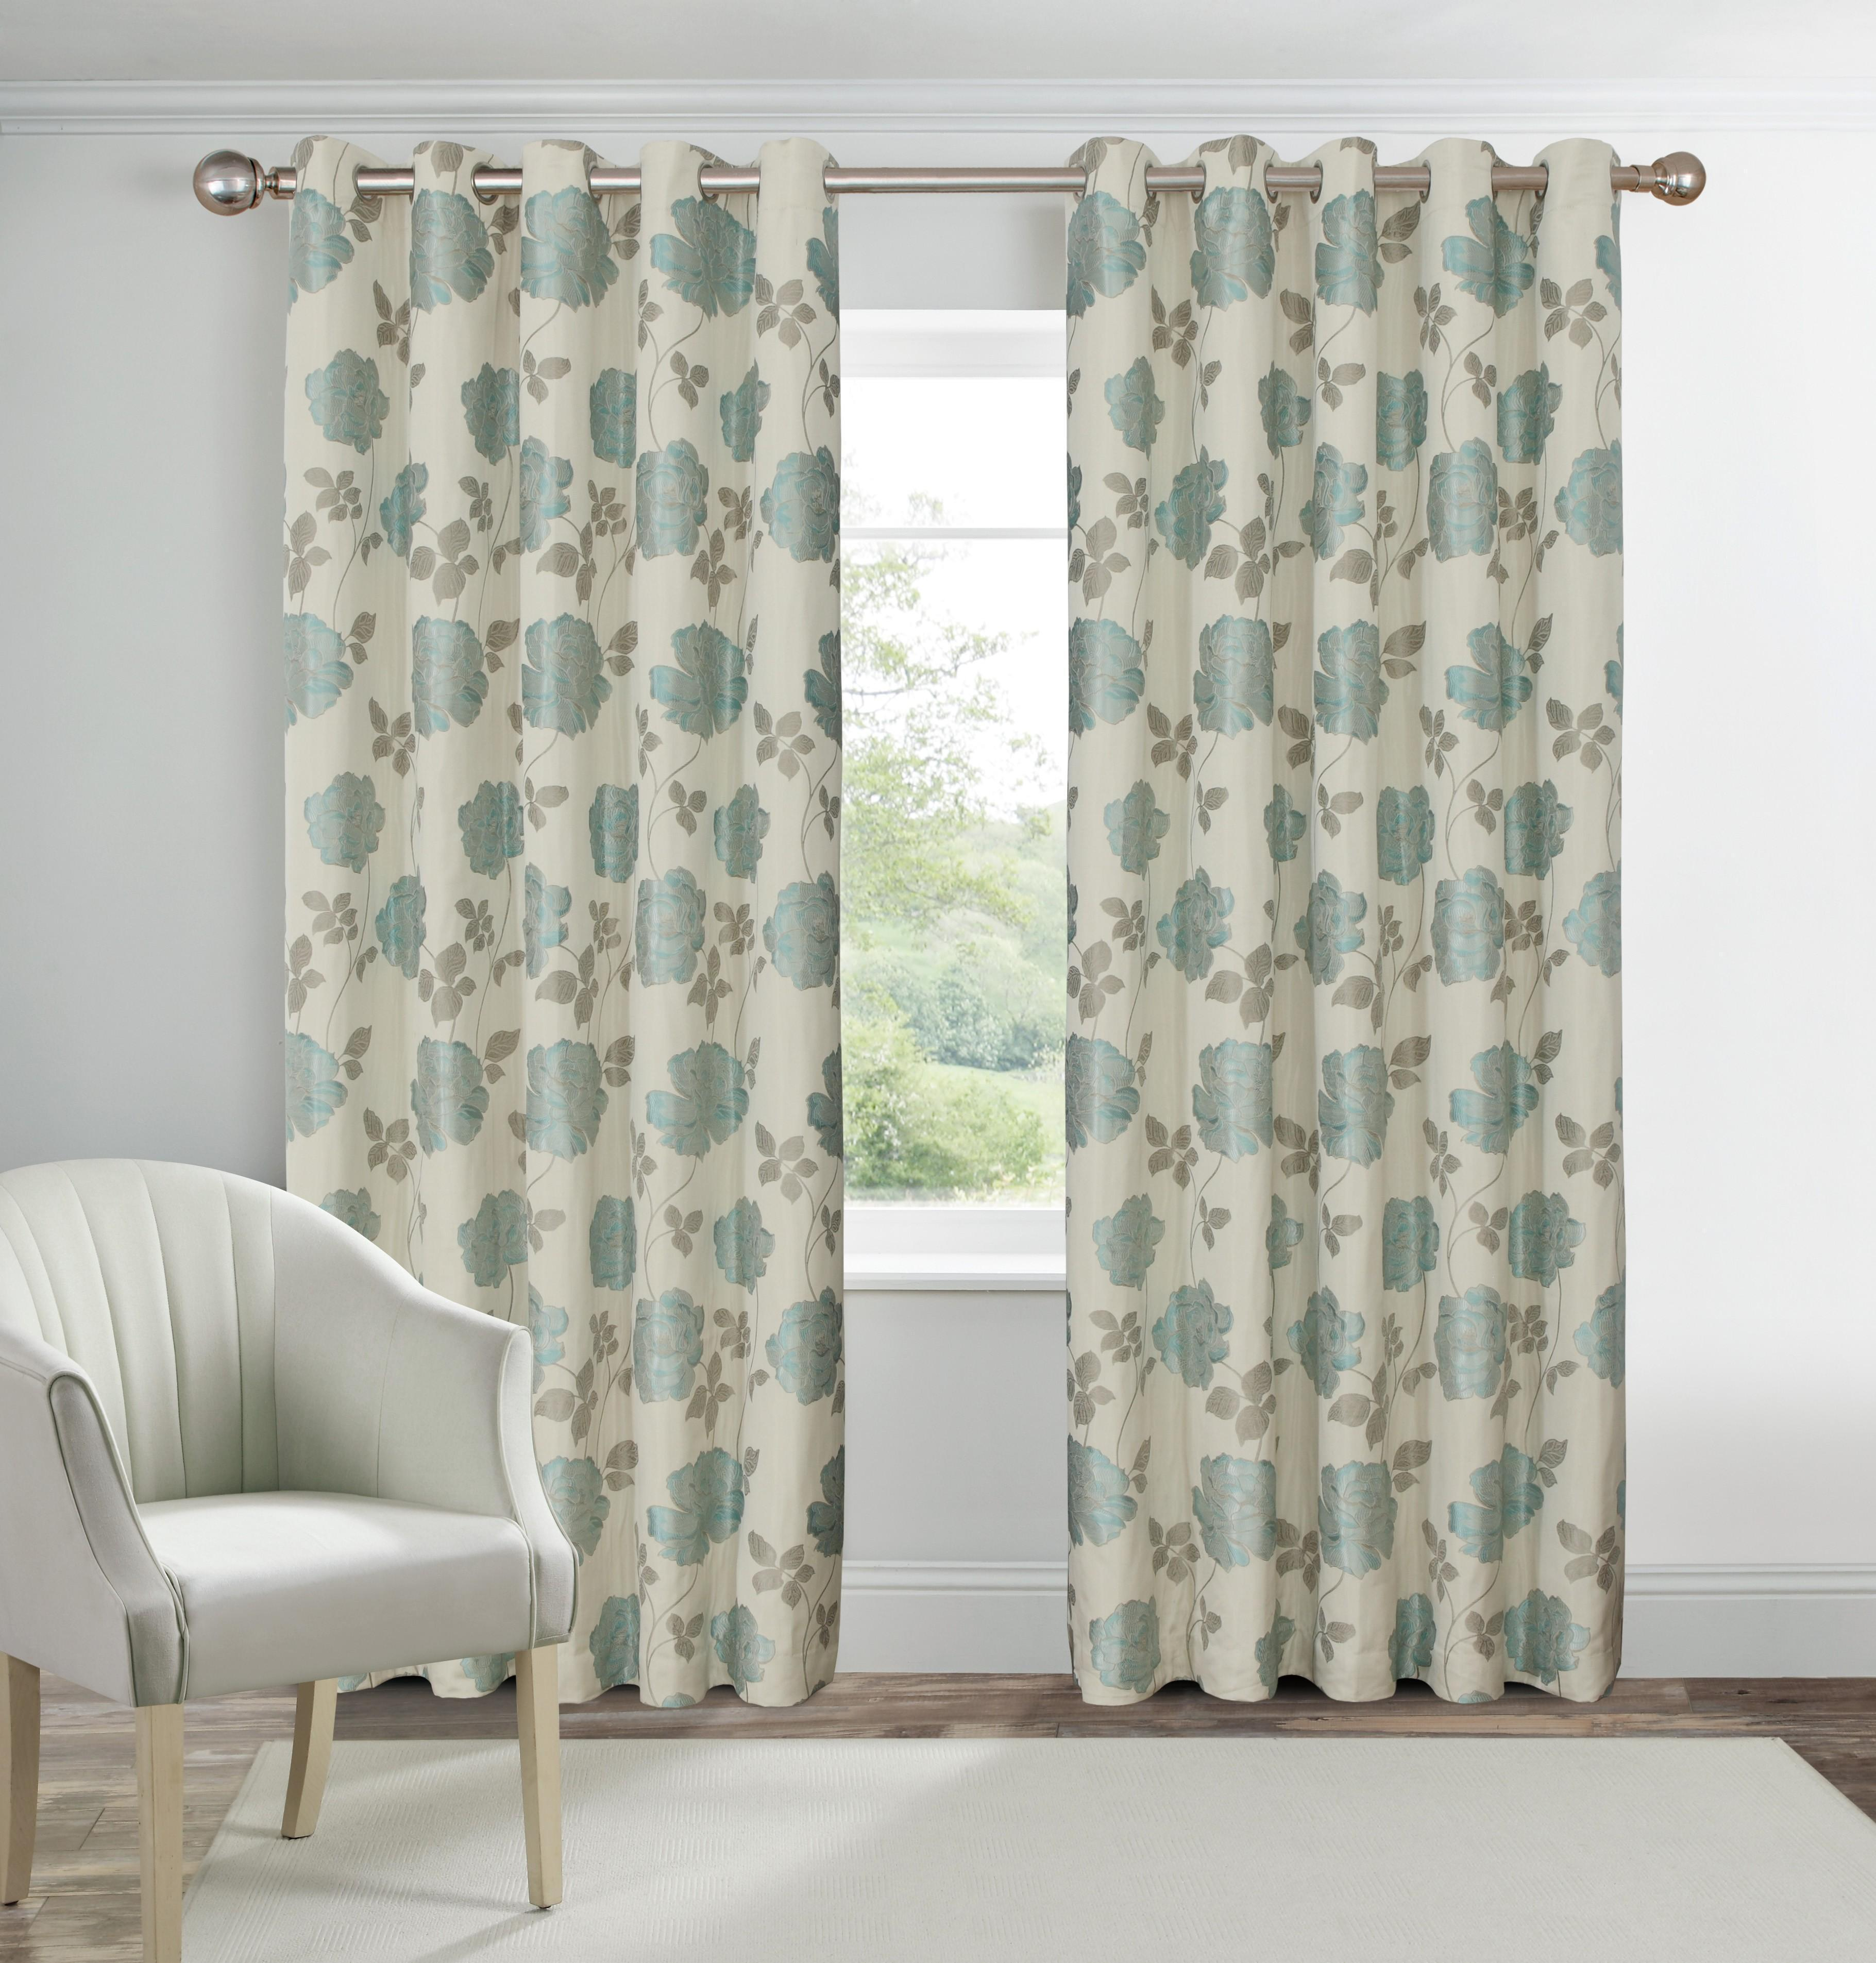 curtains 46 inch drop